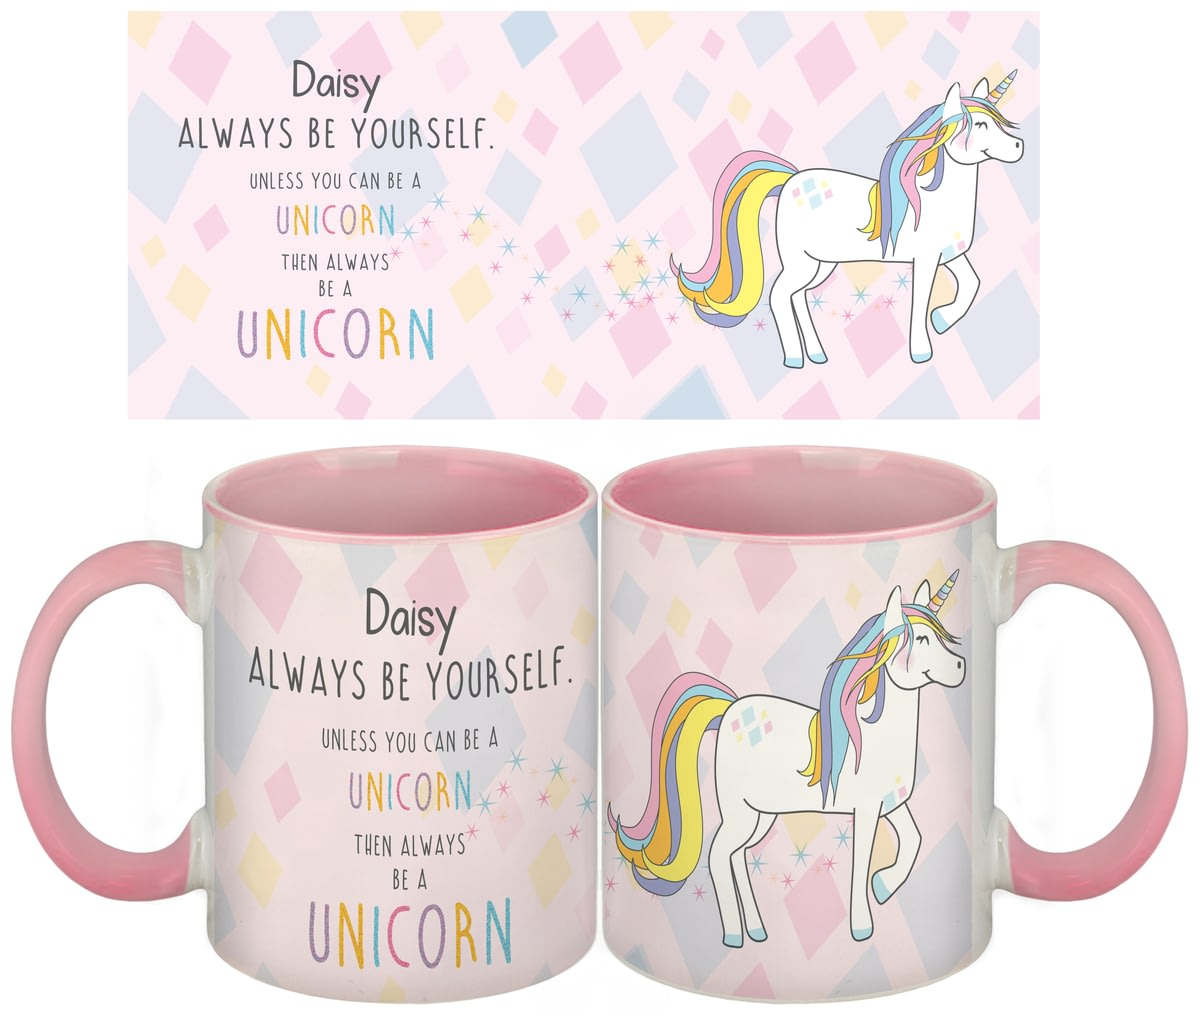 Personalised Pink Be Always A Mug Unicorn Ceramic vw8nmON0